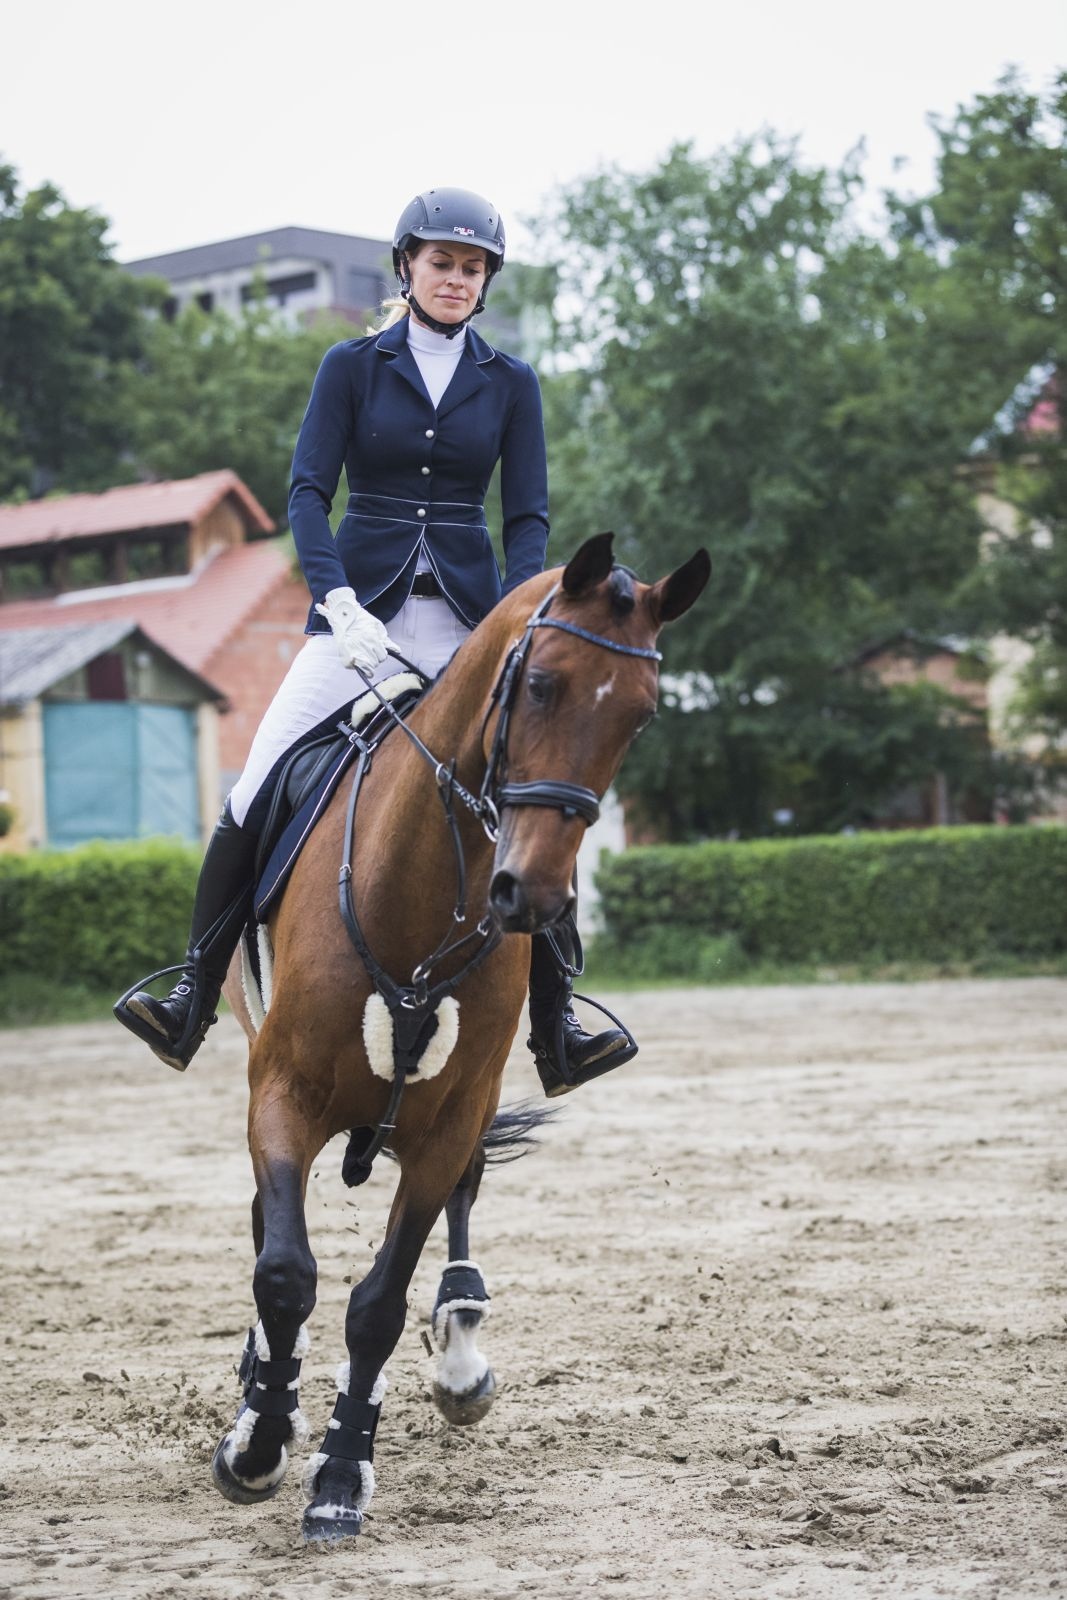 Cavalliera Riding Jacket Prime Show Jackets Equestrian Outfits Riding Jacket [ 1600 x 1067 Pixel ]